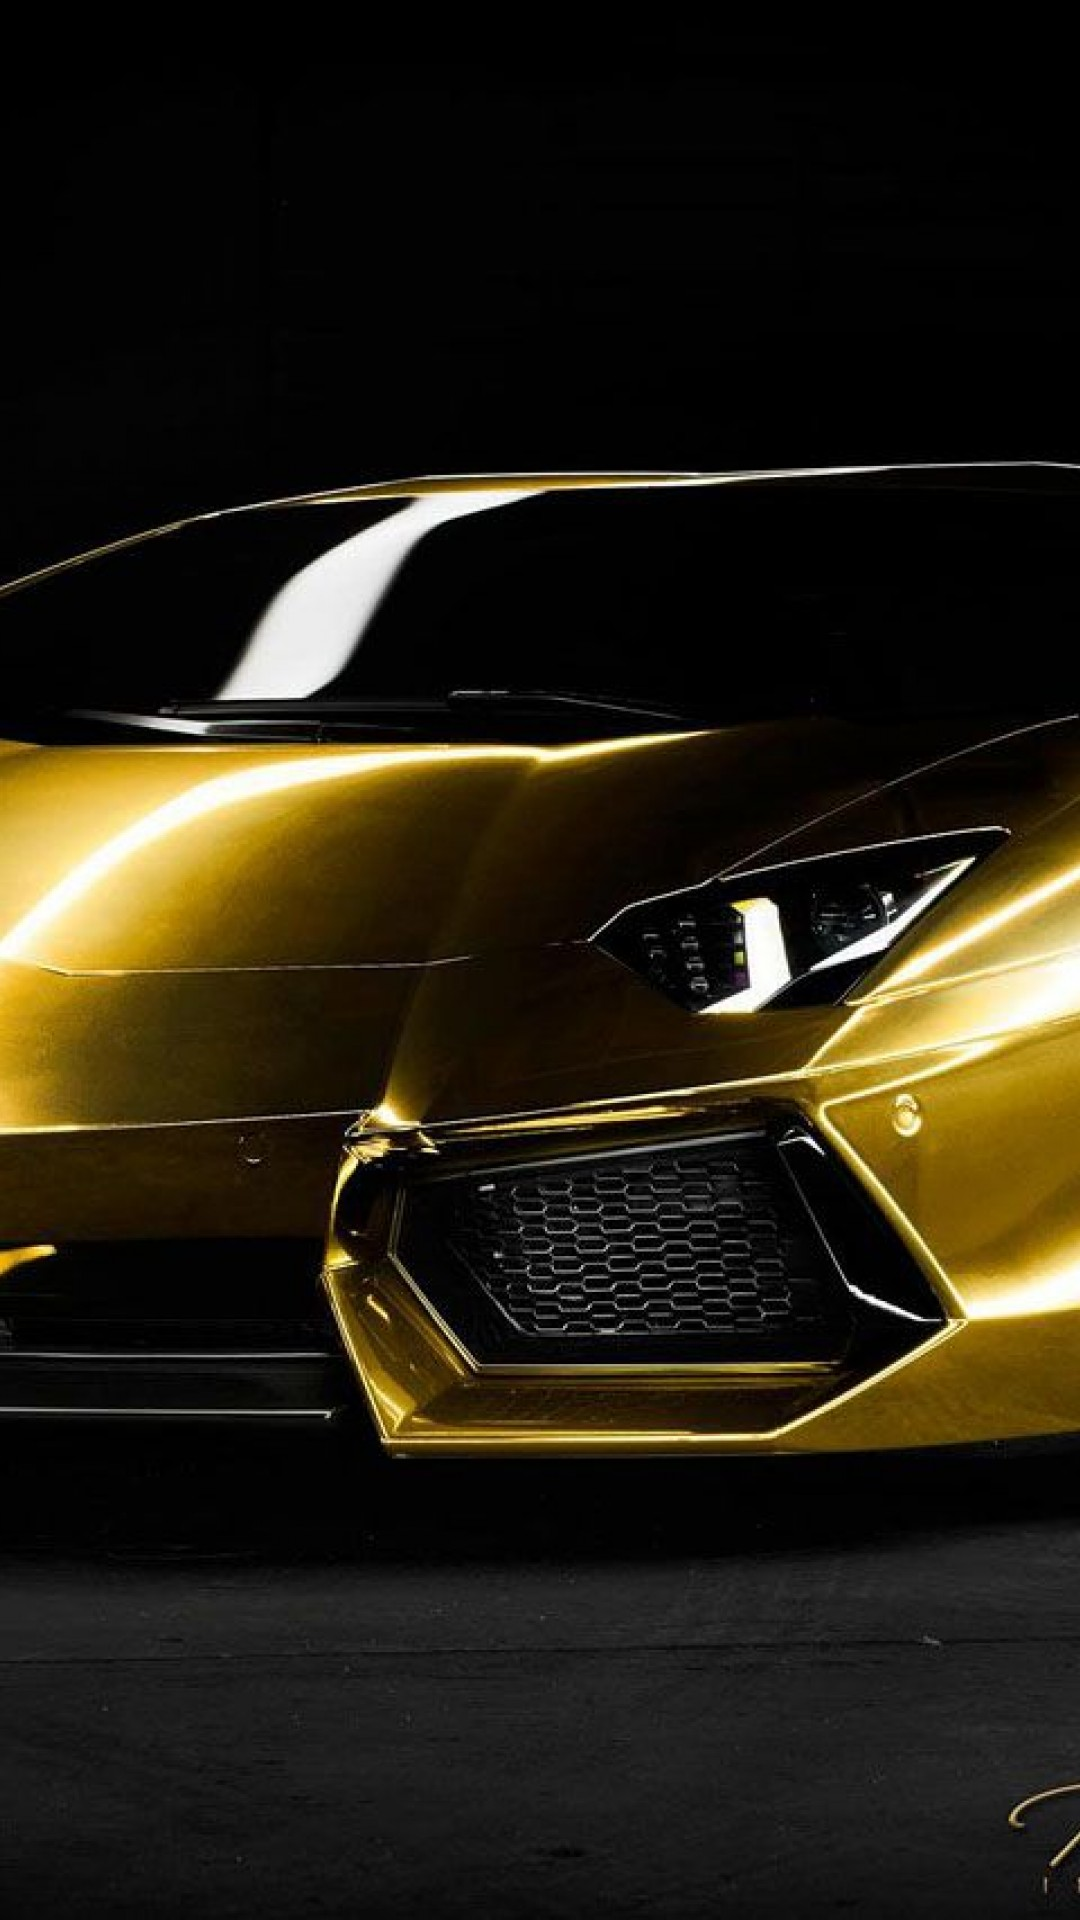 Lamborghini Gold Hd Wallpapers Iphone 6 6s Plus Hd